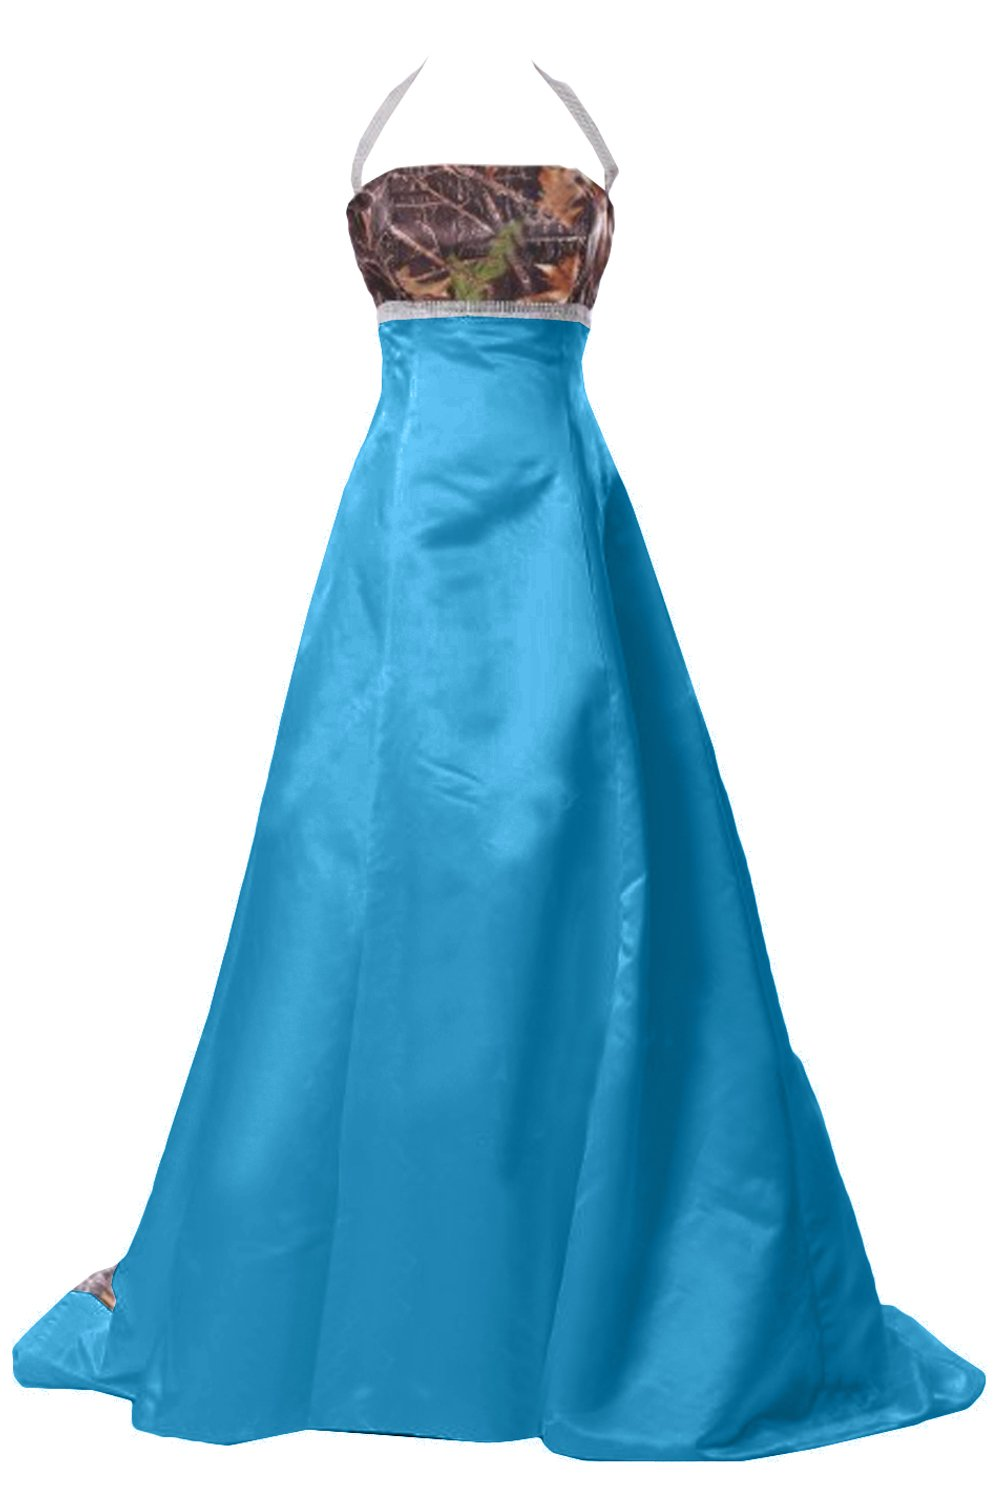 DINGZAN Halter Satin and Camo Wedding Bridal Dresses Long Prom Gowns ...